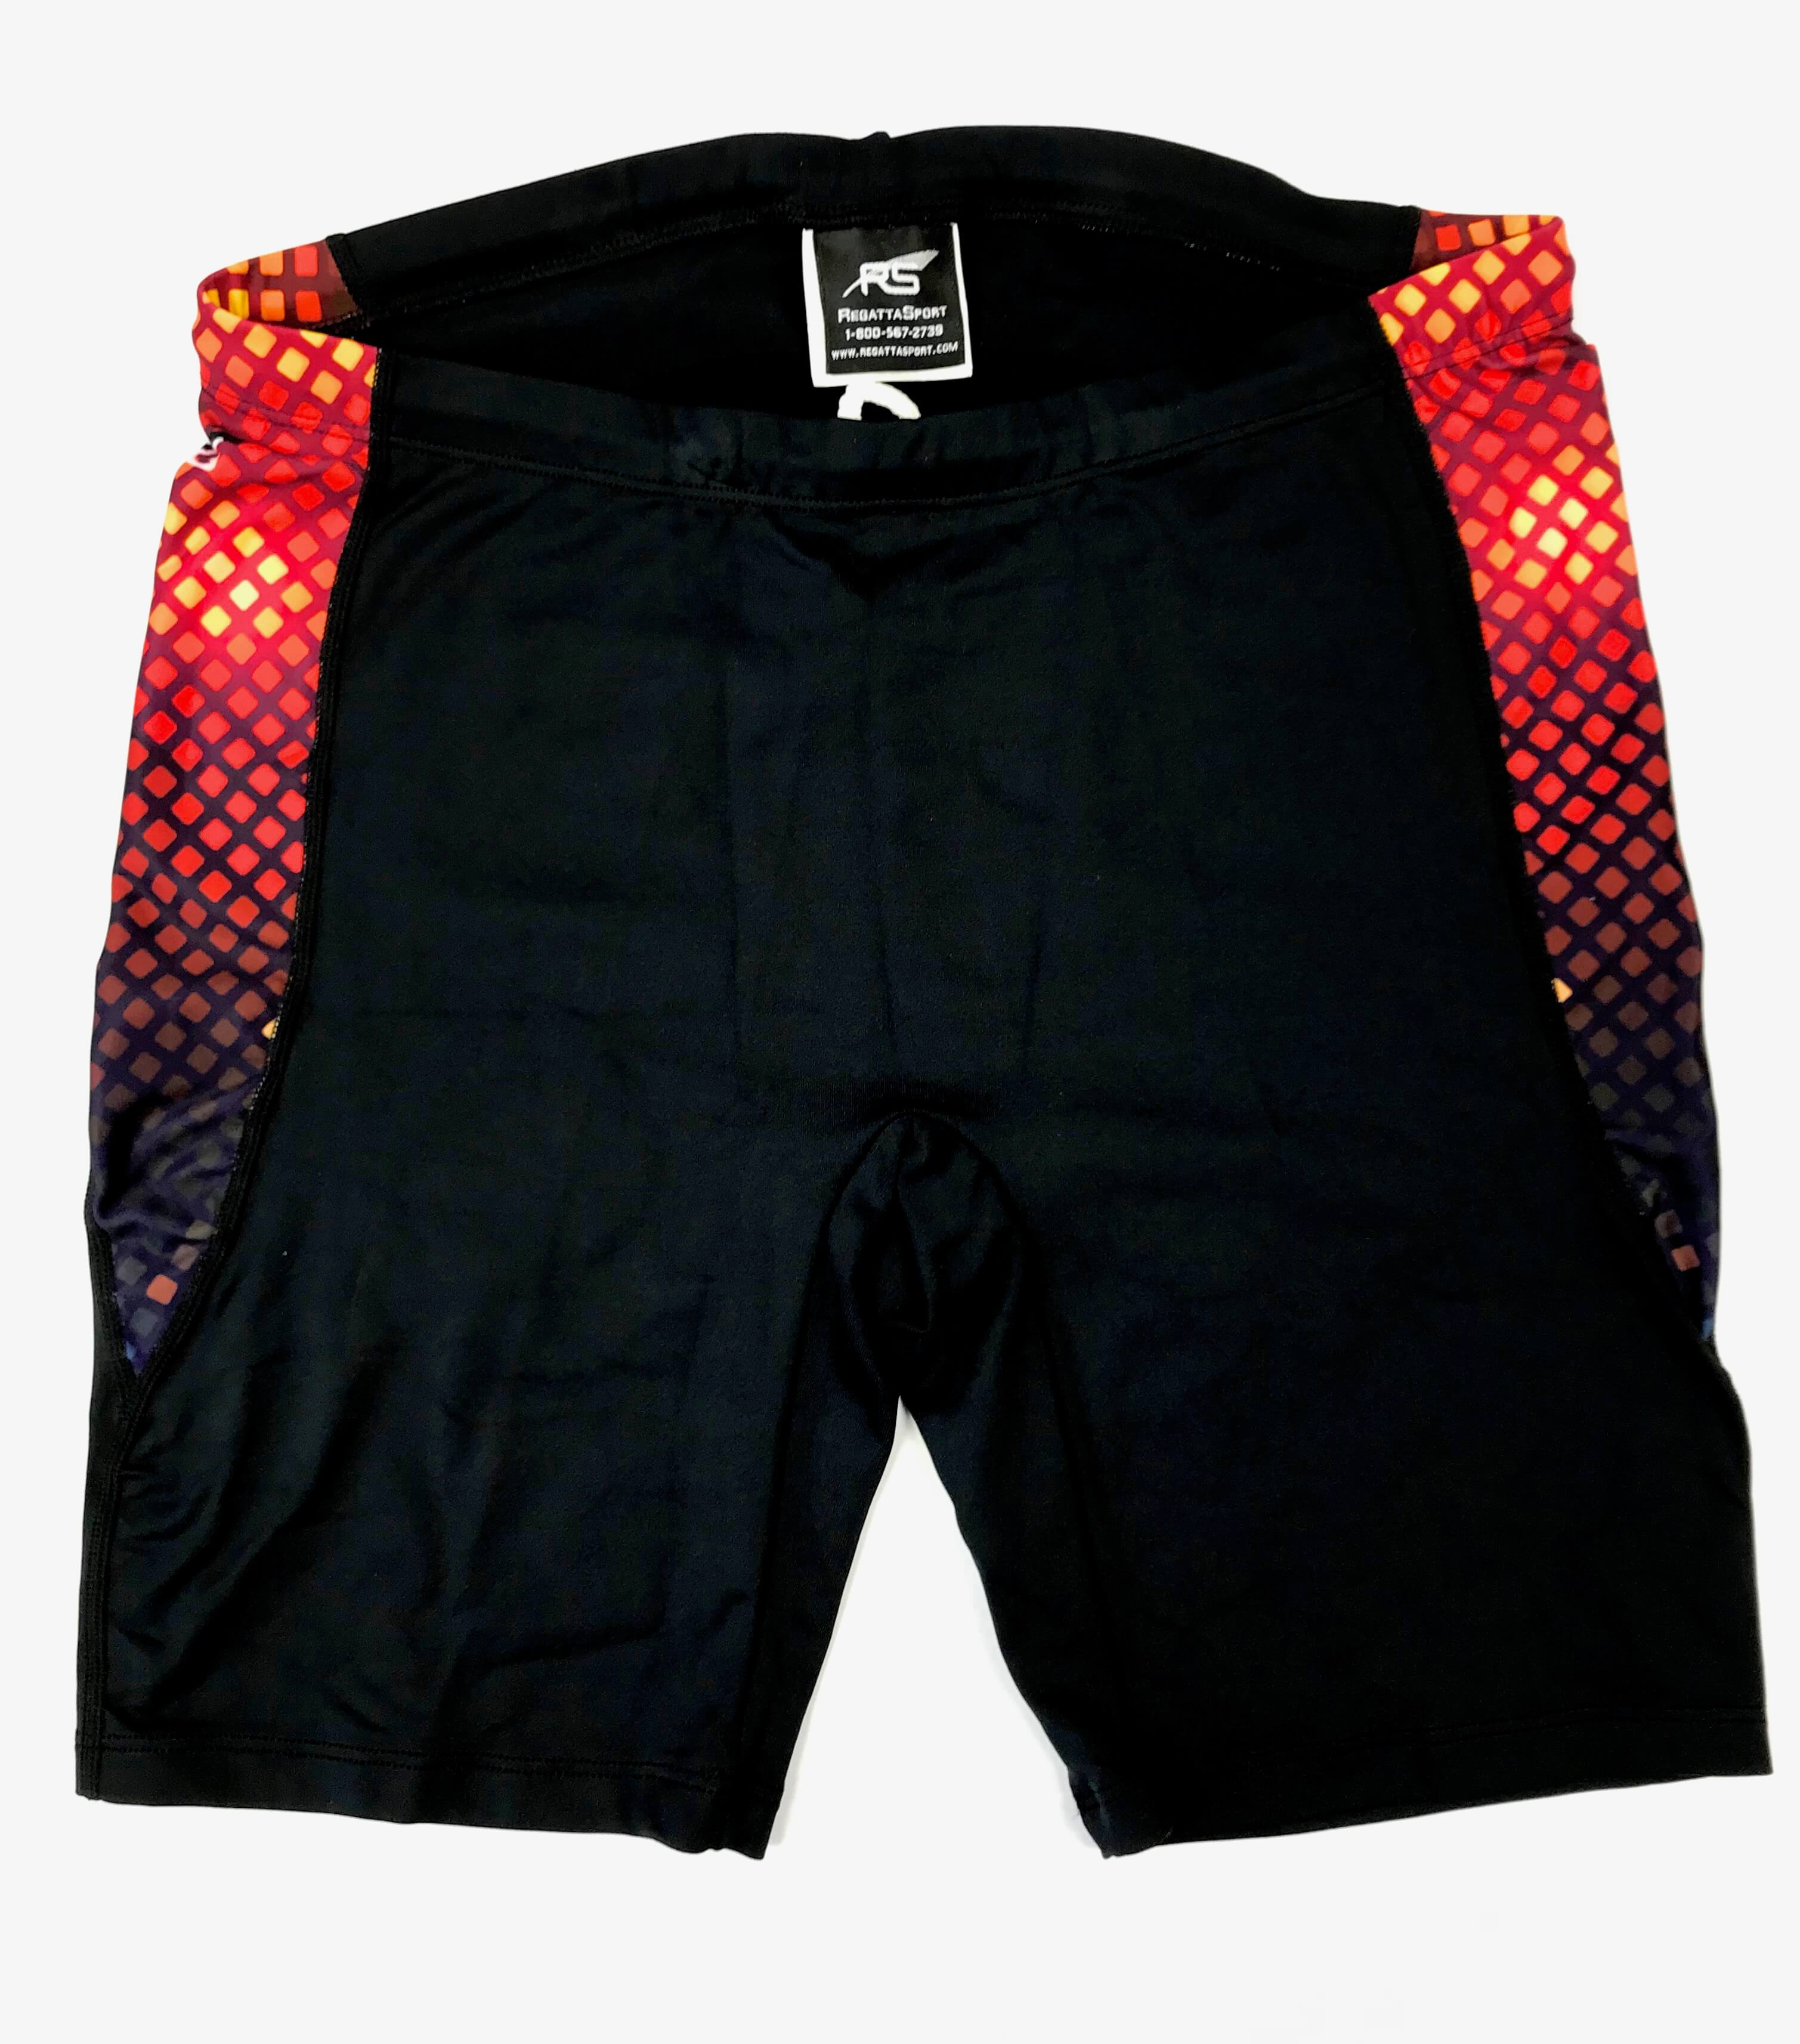 Performance Short Mens Pixel Pattern